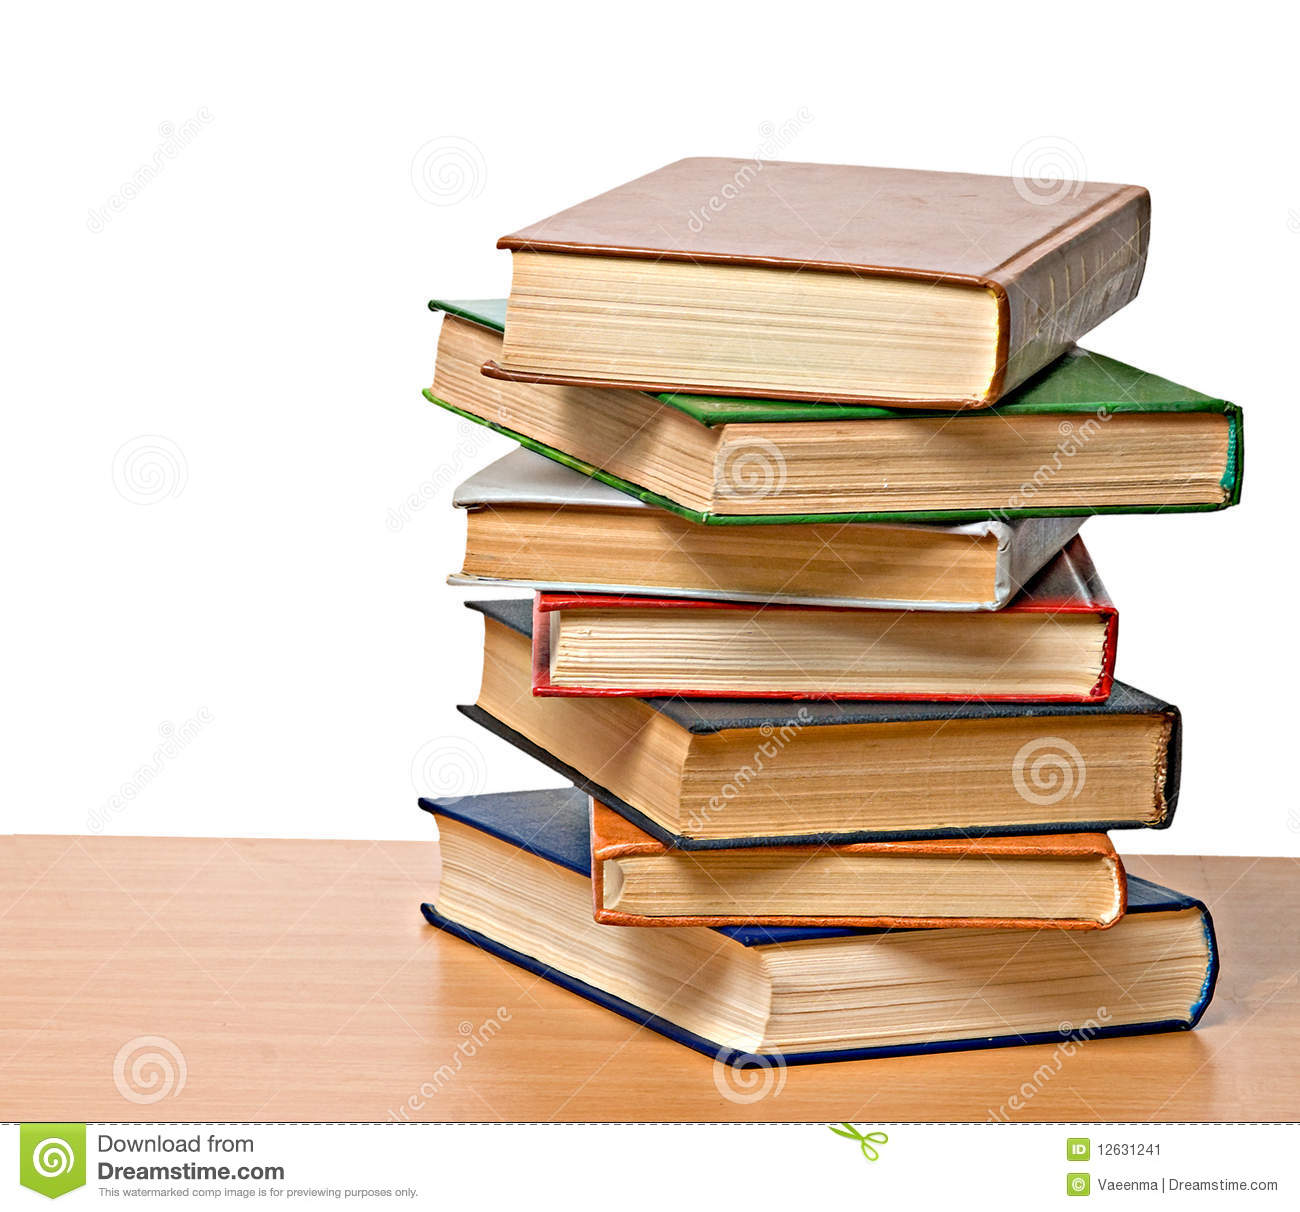 Pile Of Books Stock Image - Image: 12631241